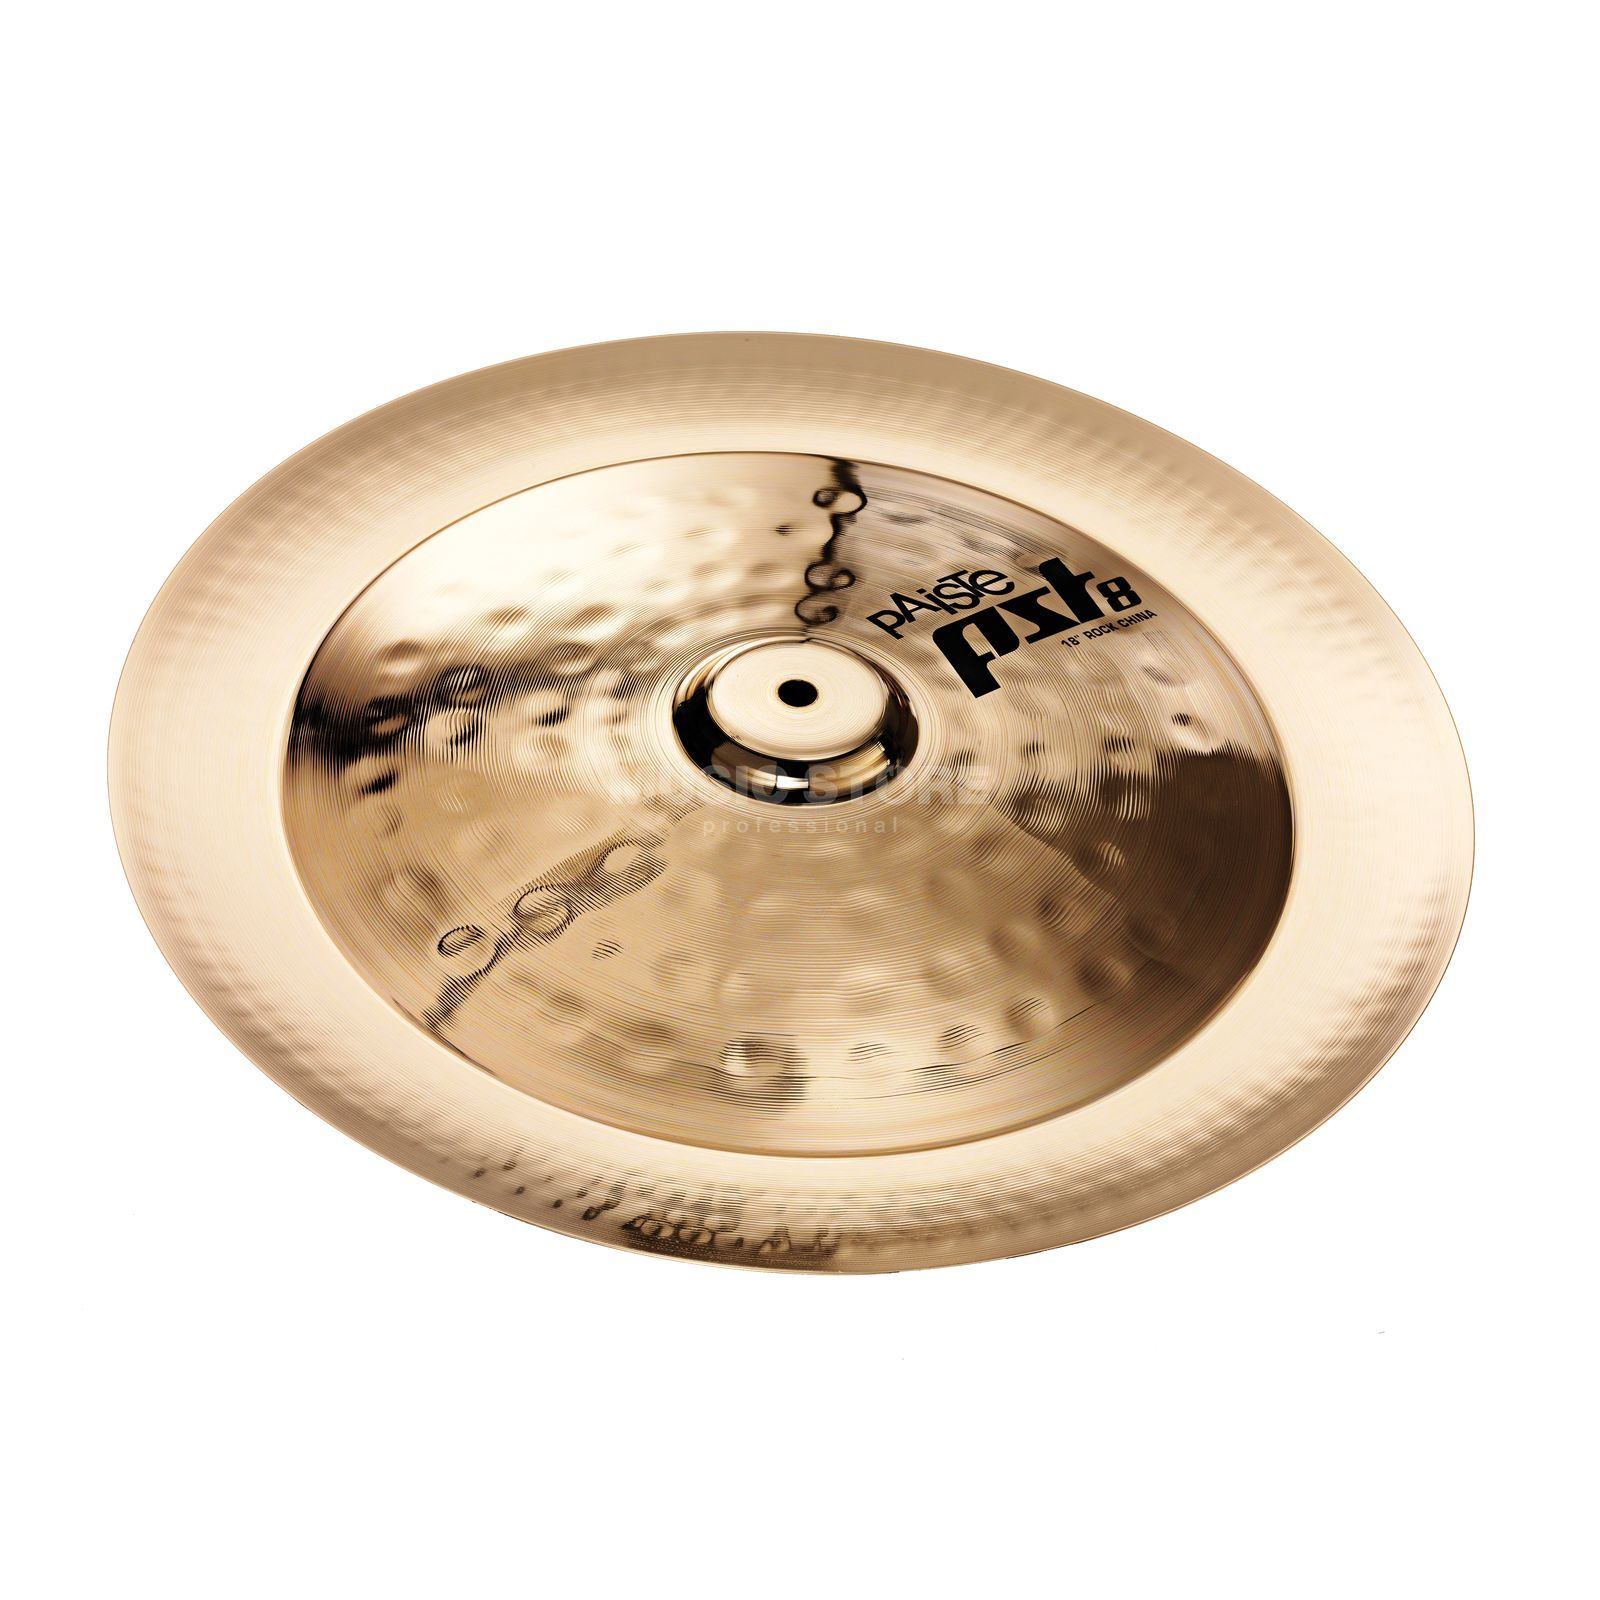 "Paiste PST8 Rock China 18"", Reflector Finish Product Image"